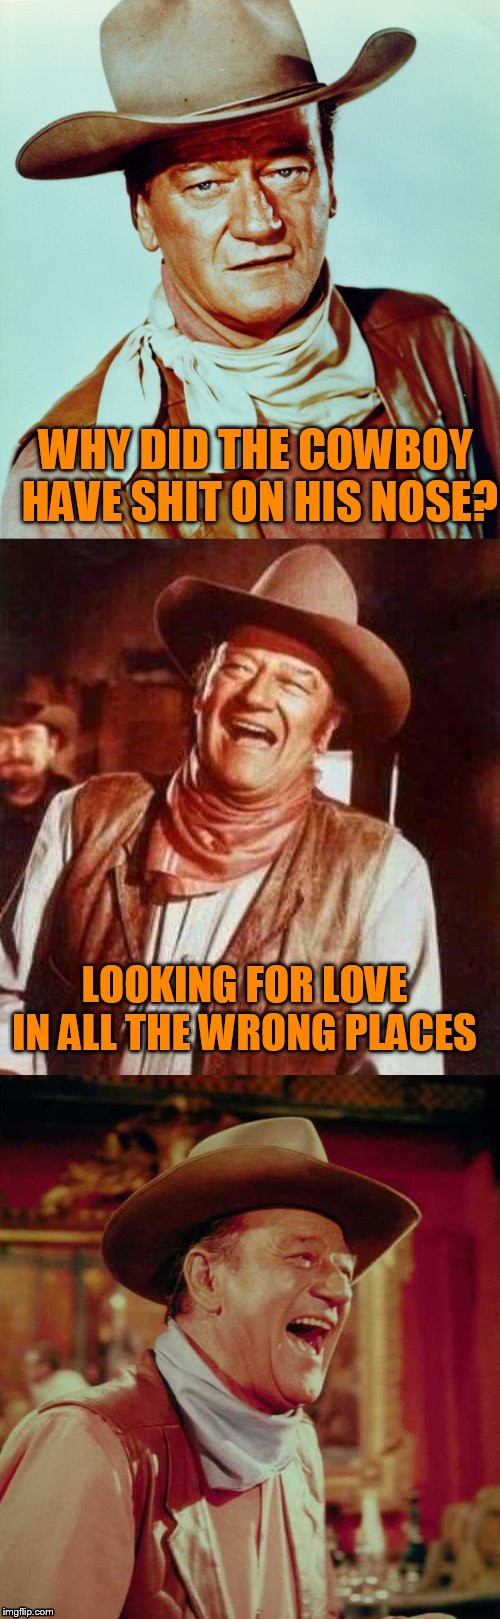 John Wayne Puns | WHY DID THE COWBOY HAVE SHIT ON HIS NOSE? LOOKING FOR LOVE IN ALL THE WRONG PLACES | image tagged in john wayne puns | made w/ Imgflip meme maker